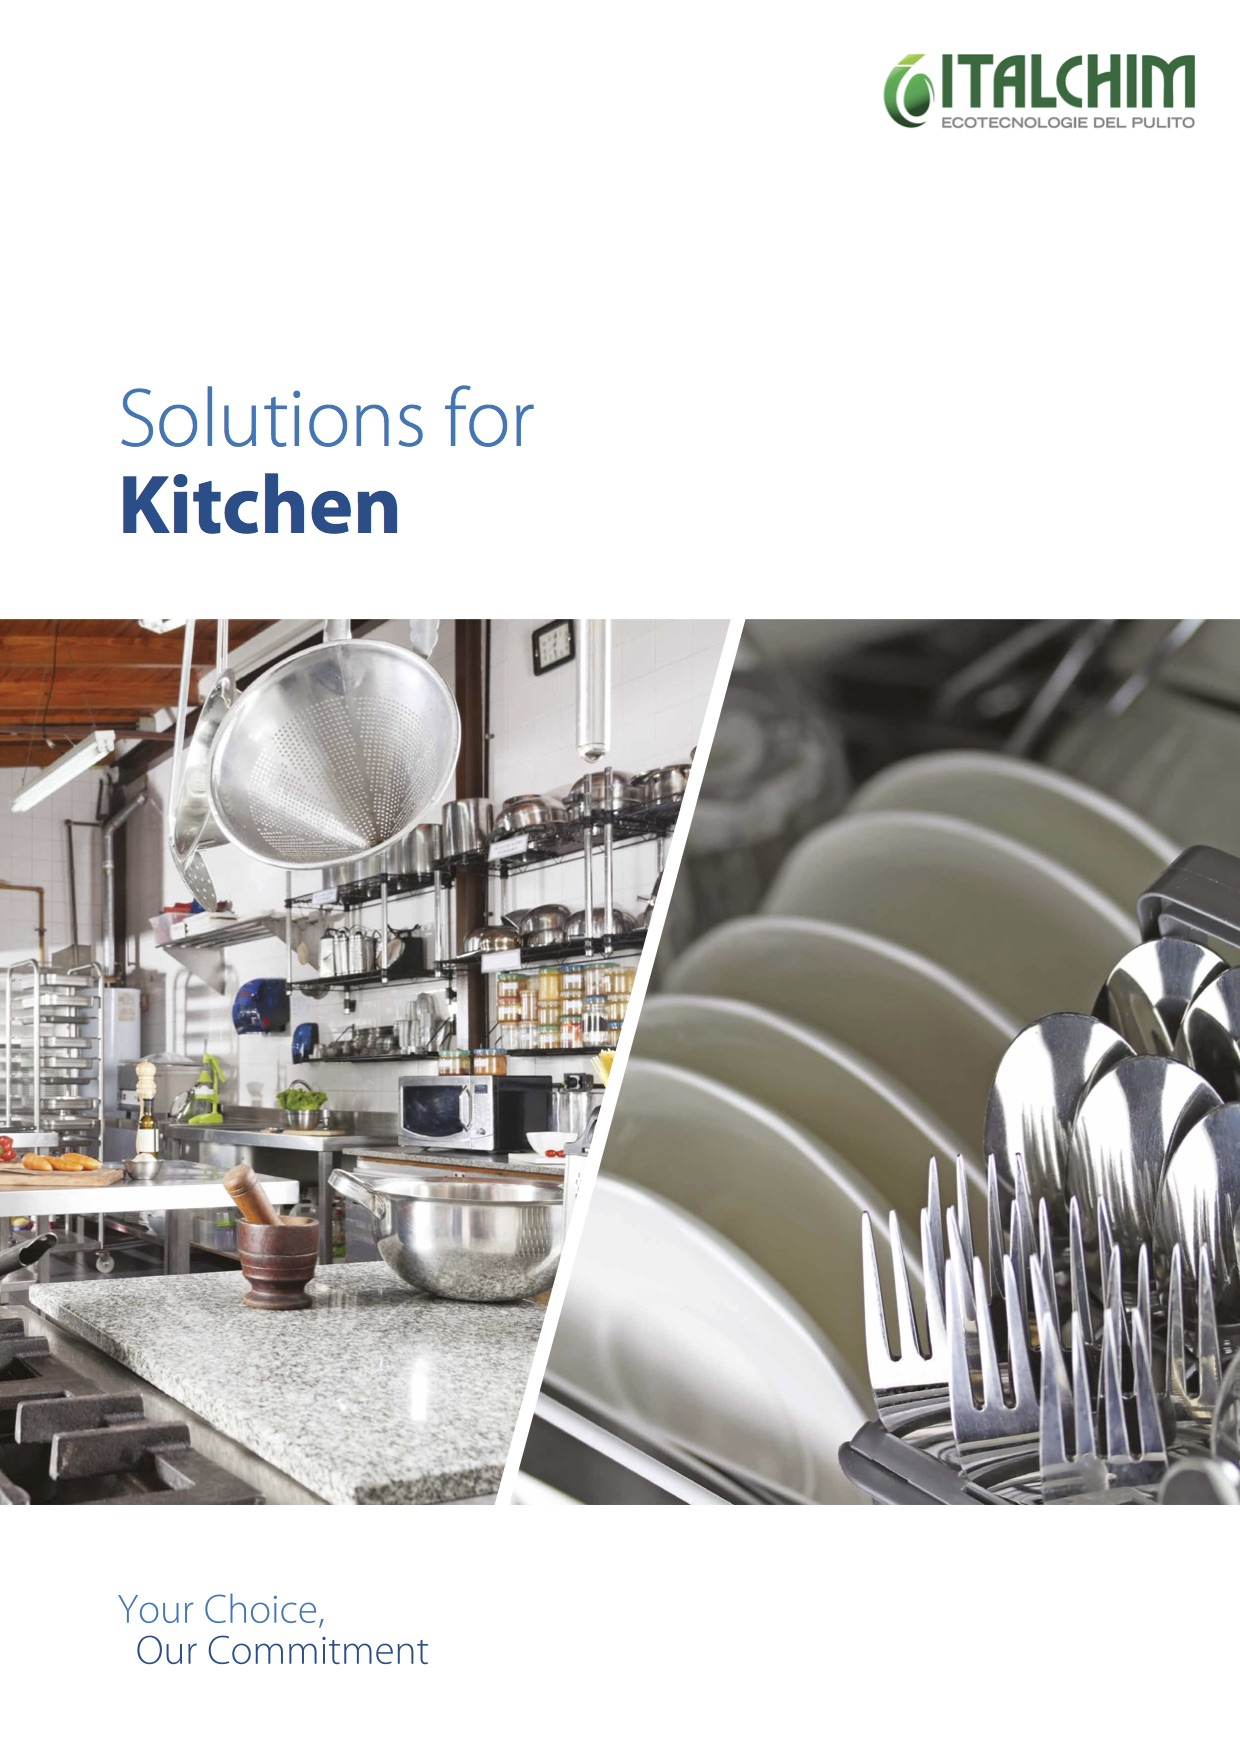 SOLUTIONS FOR KITCHEN